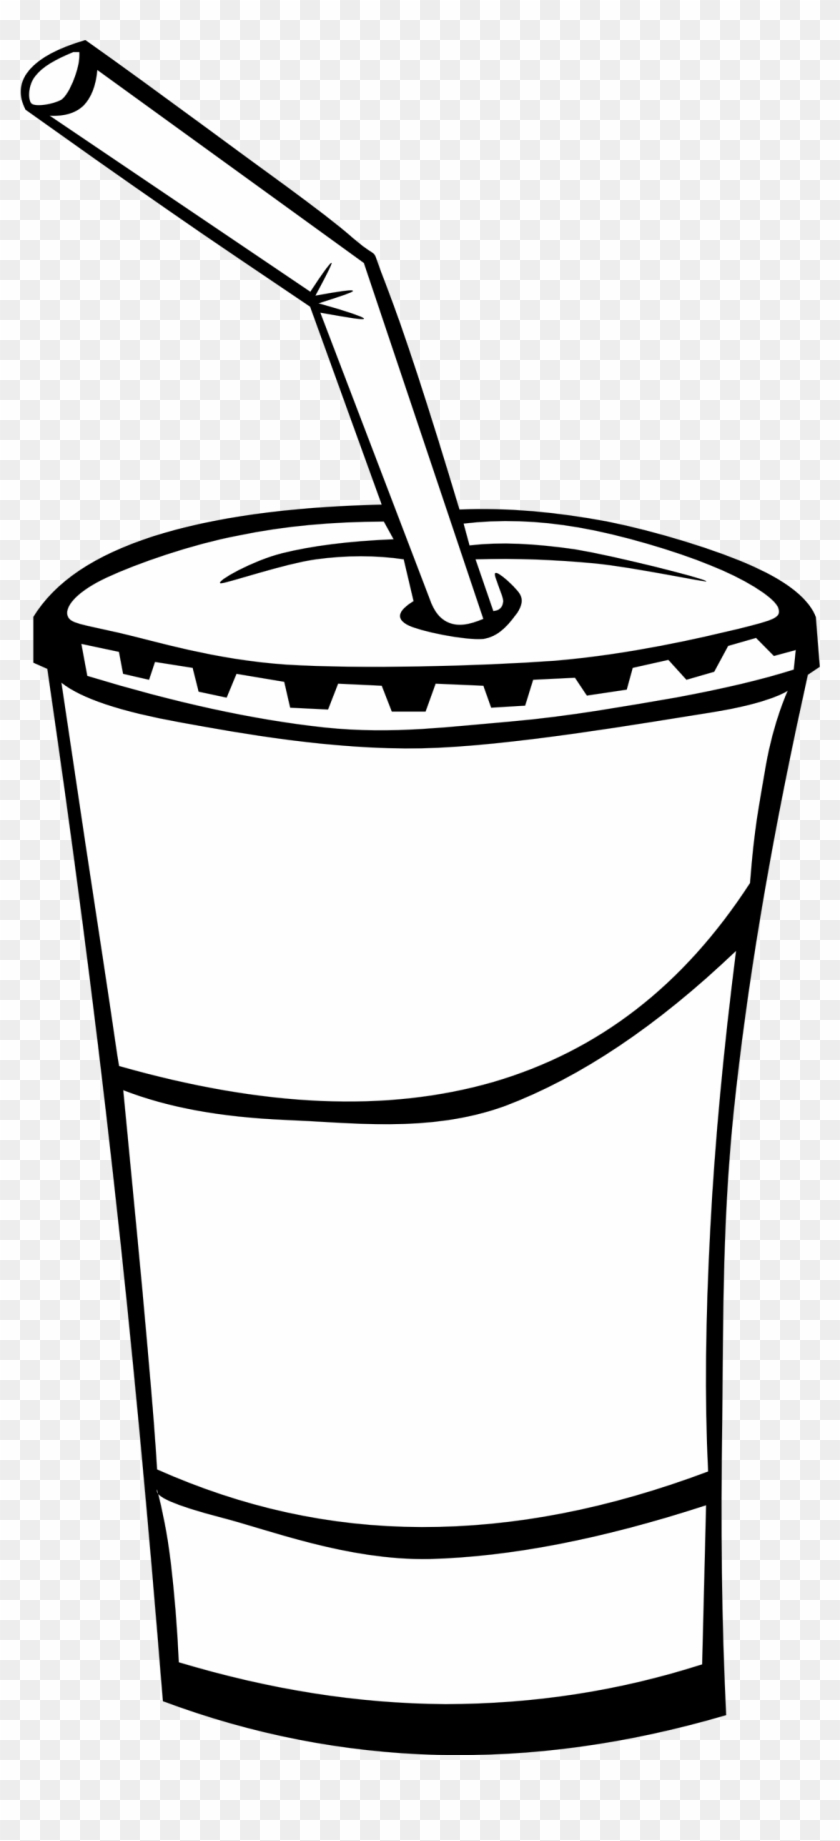 Soft Drink Clip Art Black And White - Draw A Soda Cup #73076